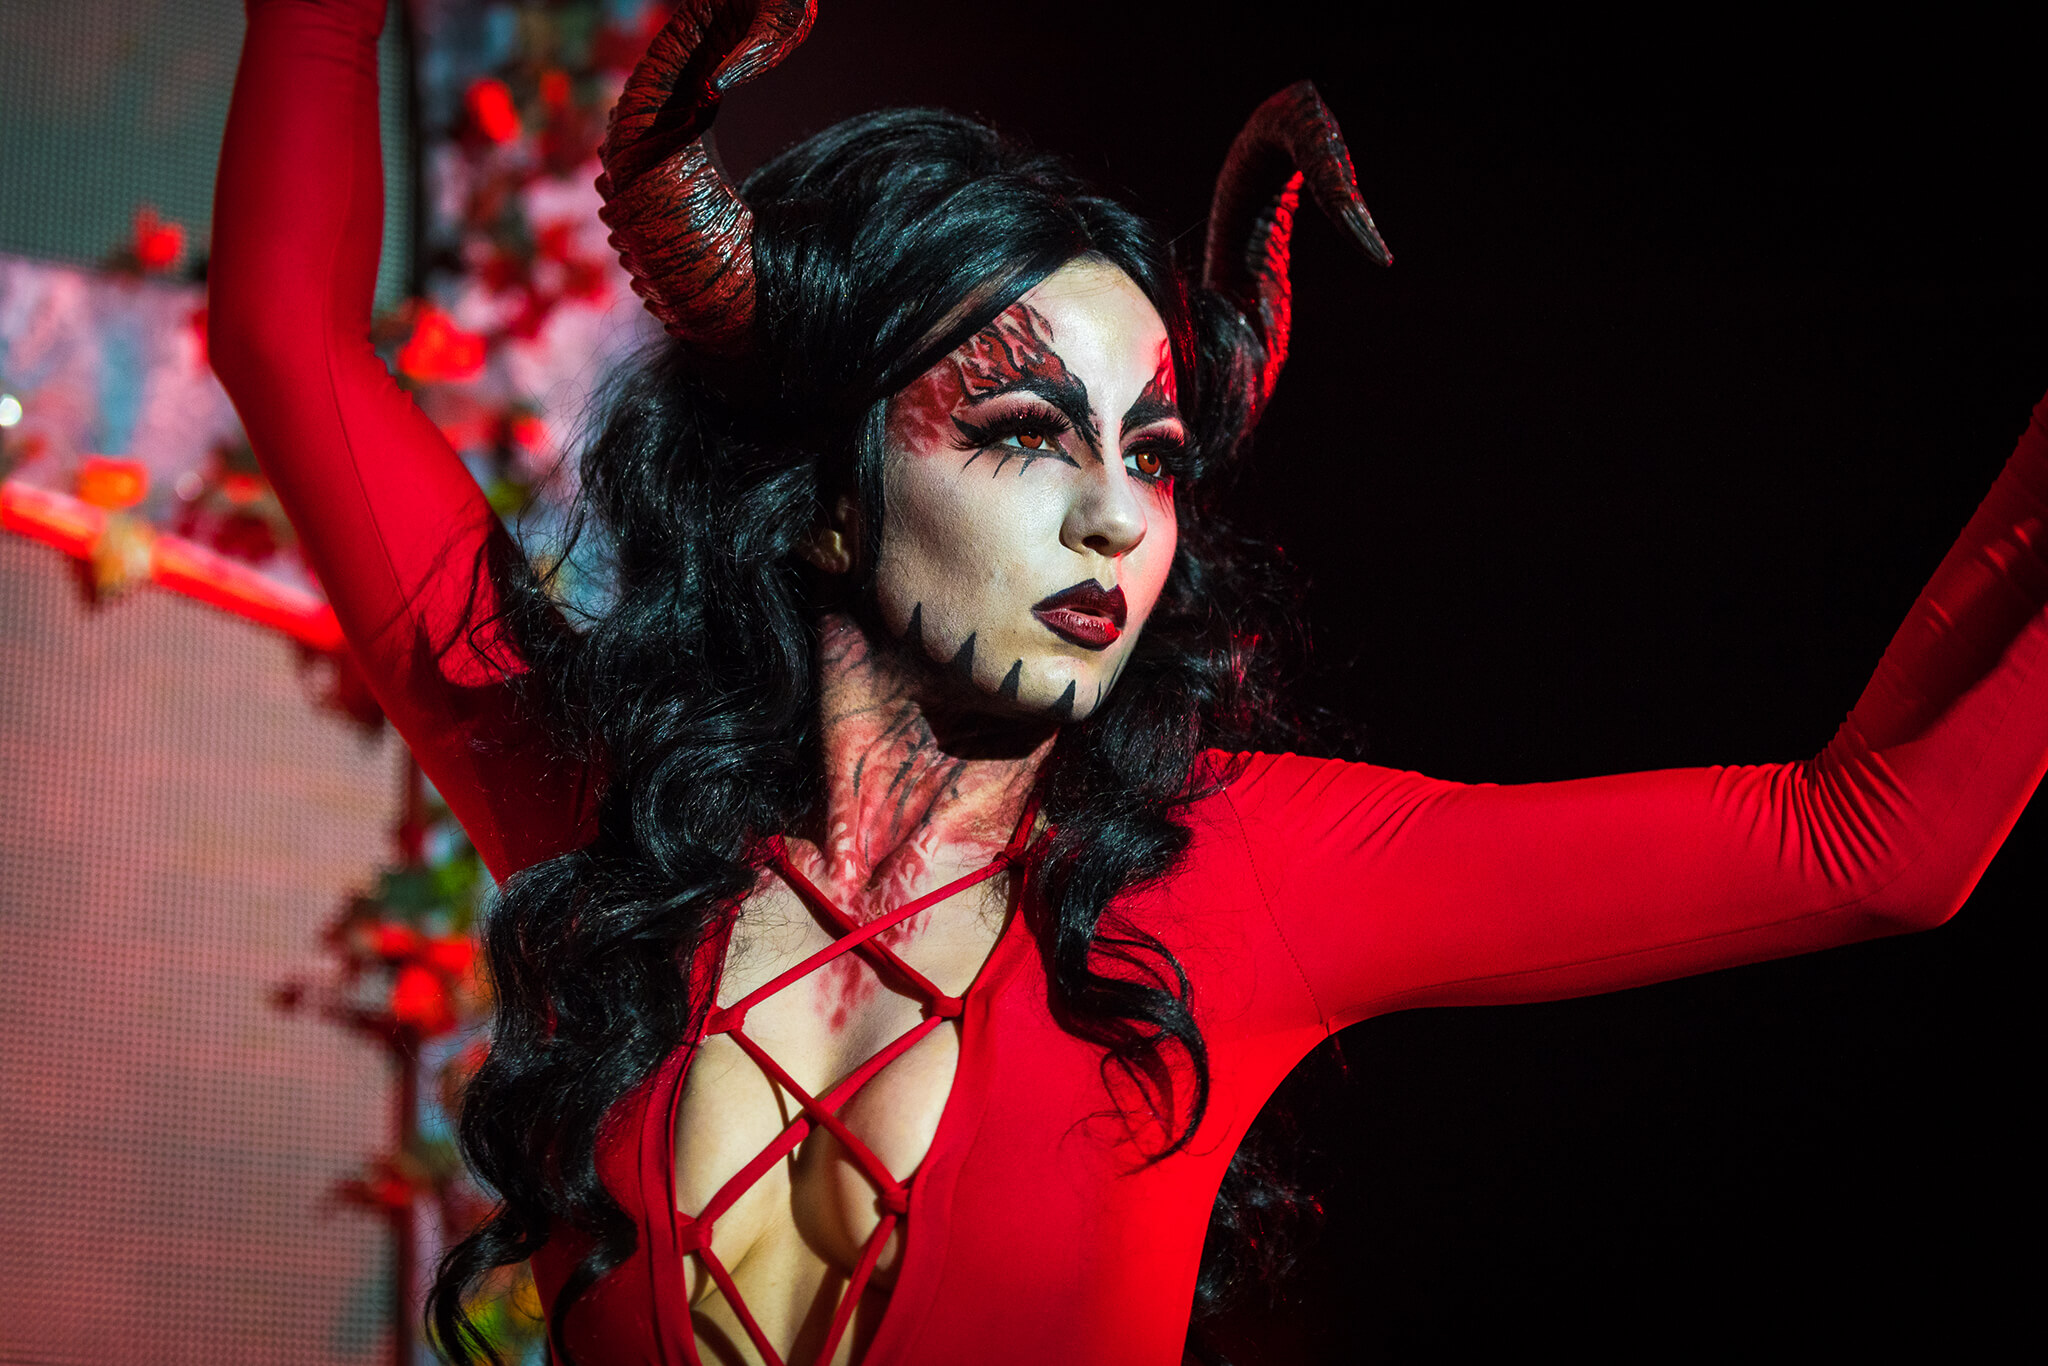 costumed devil performer looks far